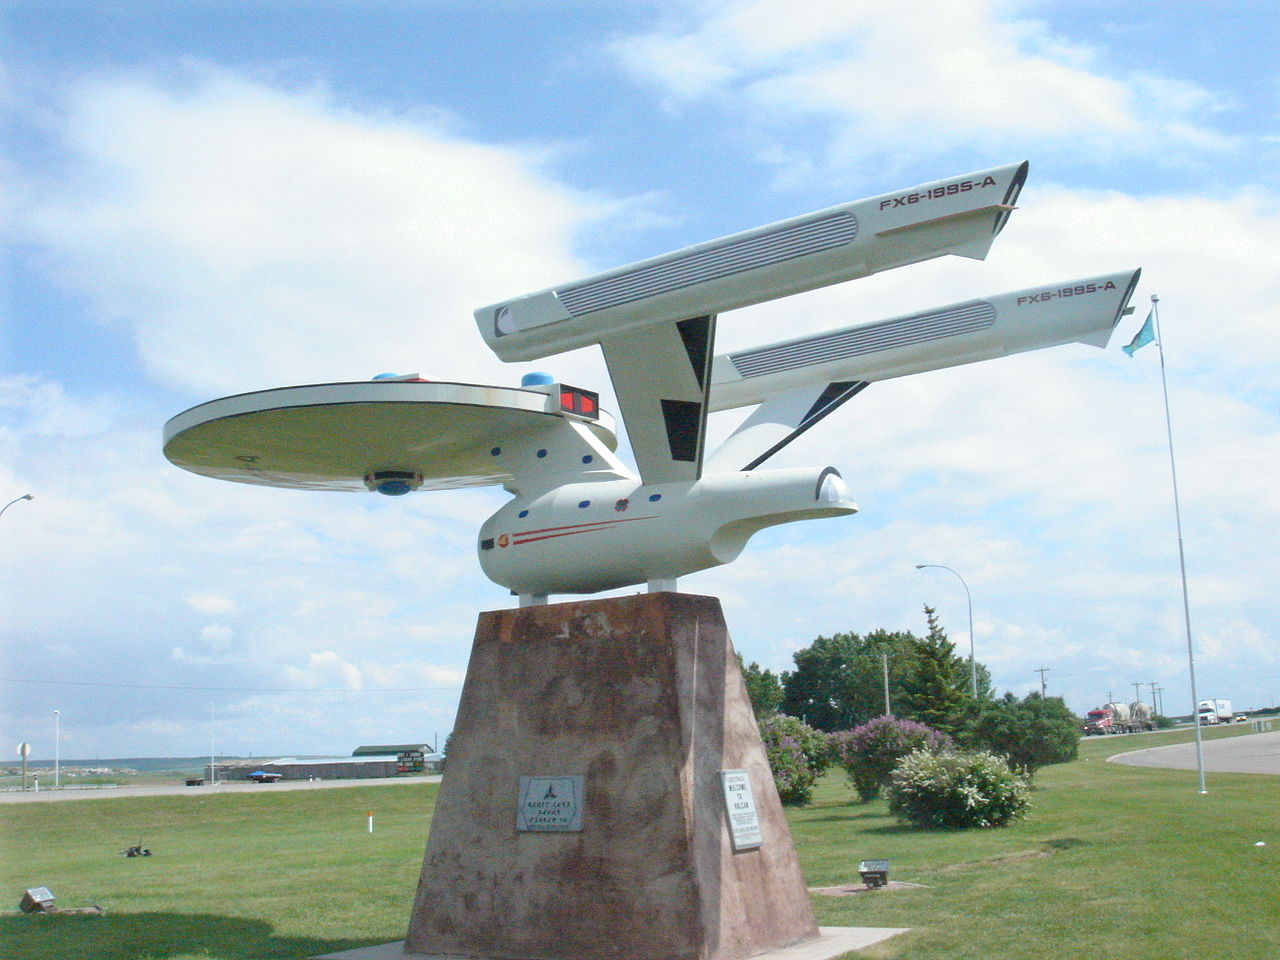 Vulcan Alberta Enterprise Replica